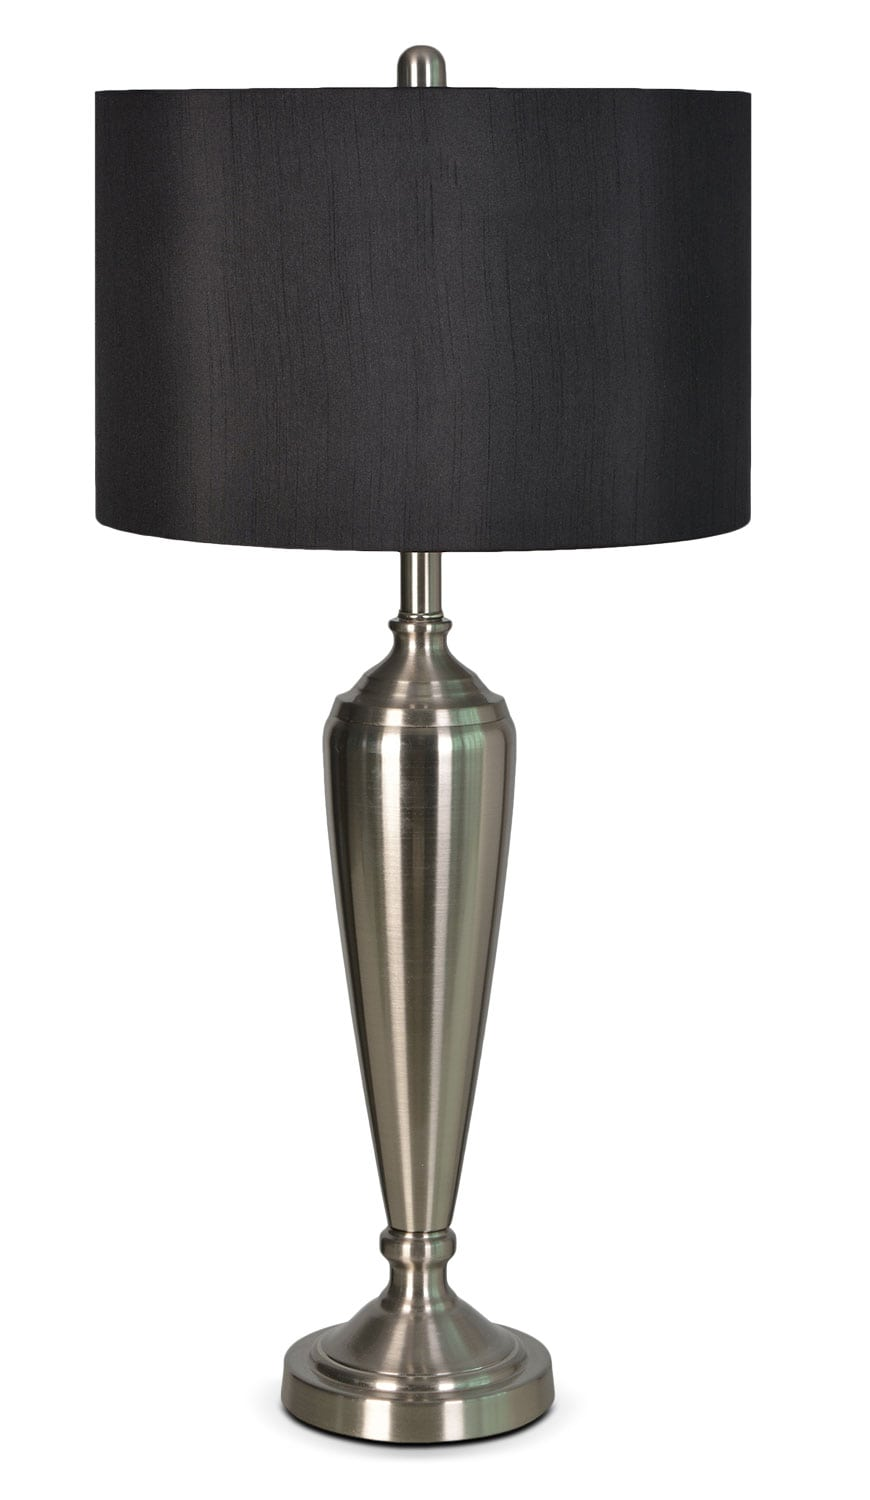 "Accent and Occasional Furniture - Eloise 30"" Table Lamp - Metal"